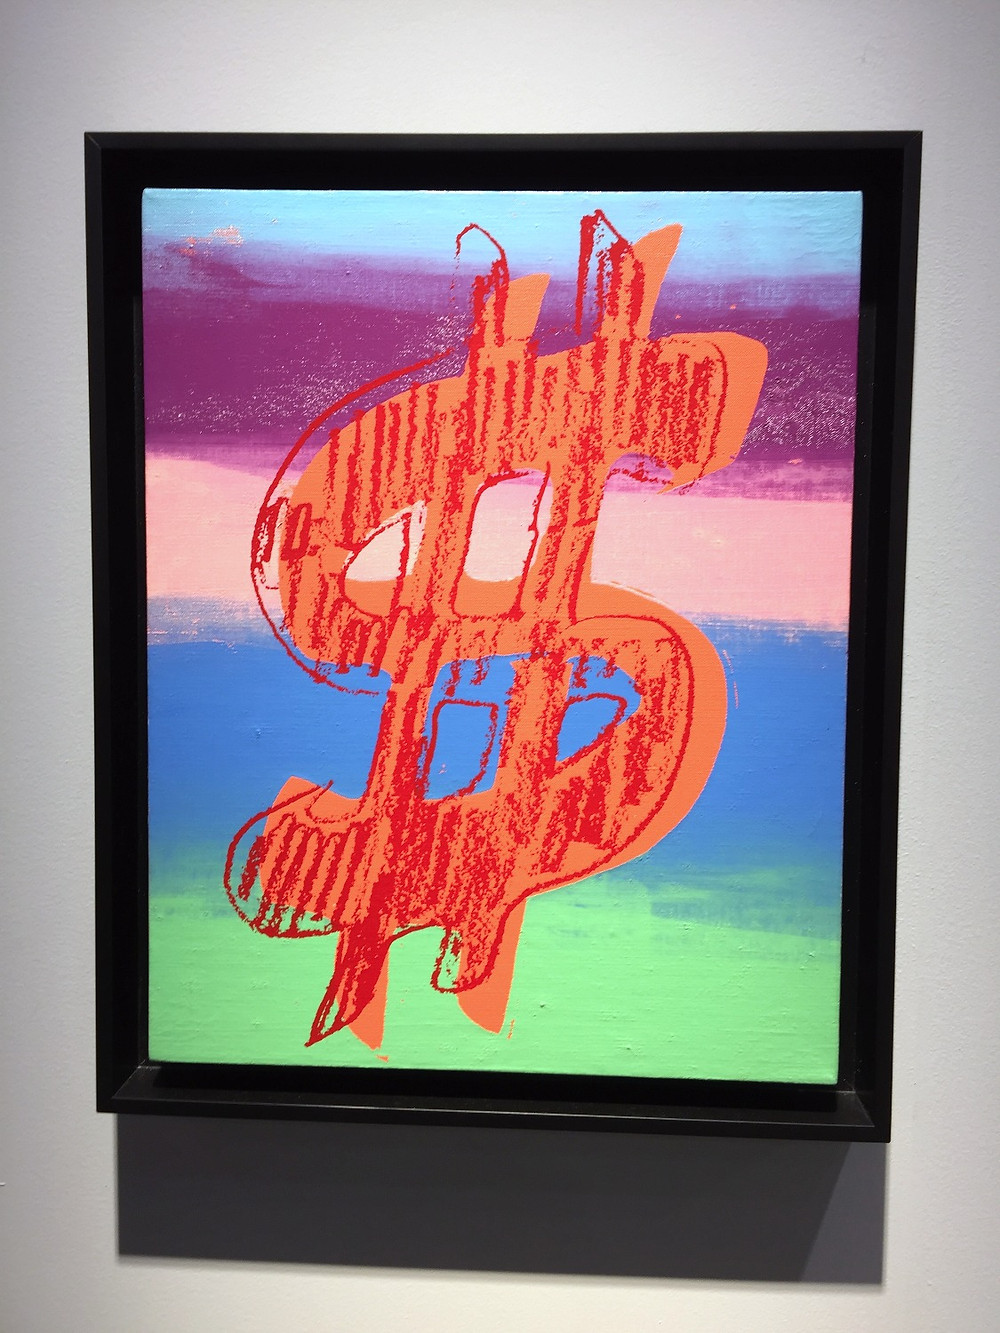 Andy Warhol | Dollar sign 1981 Synthetic polymer and silkscreen ink on canvas | Art Basel HK 2016